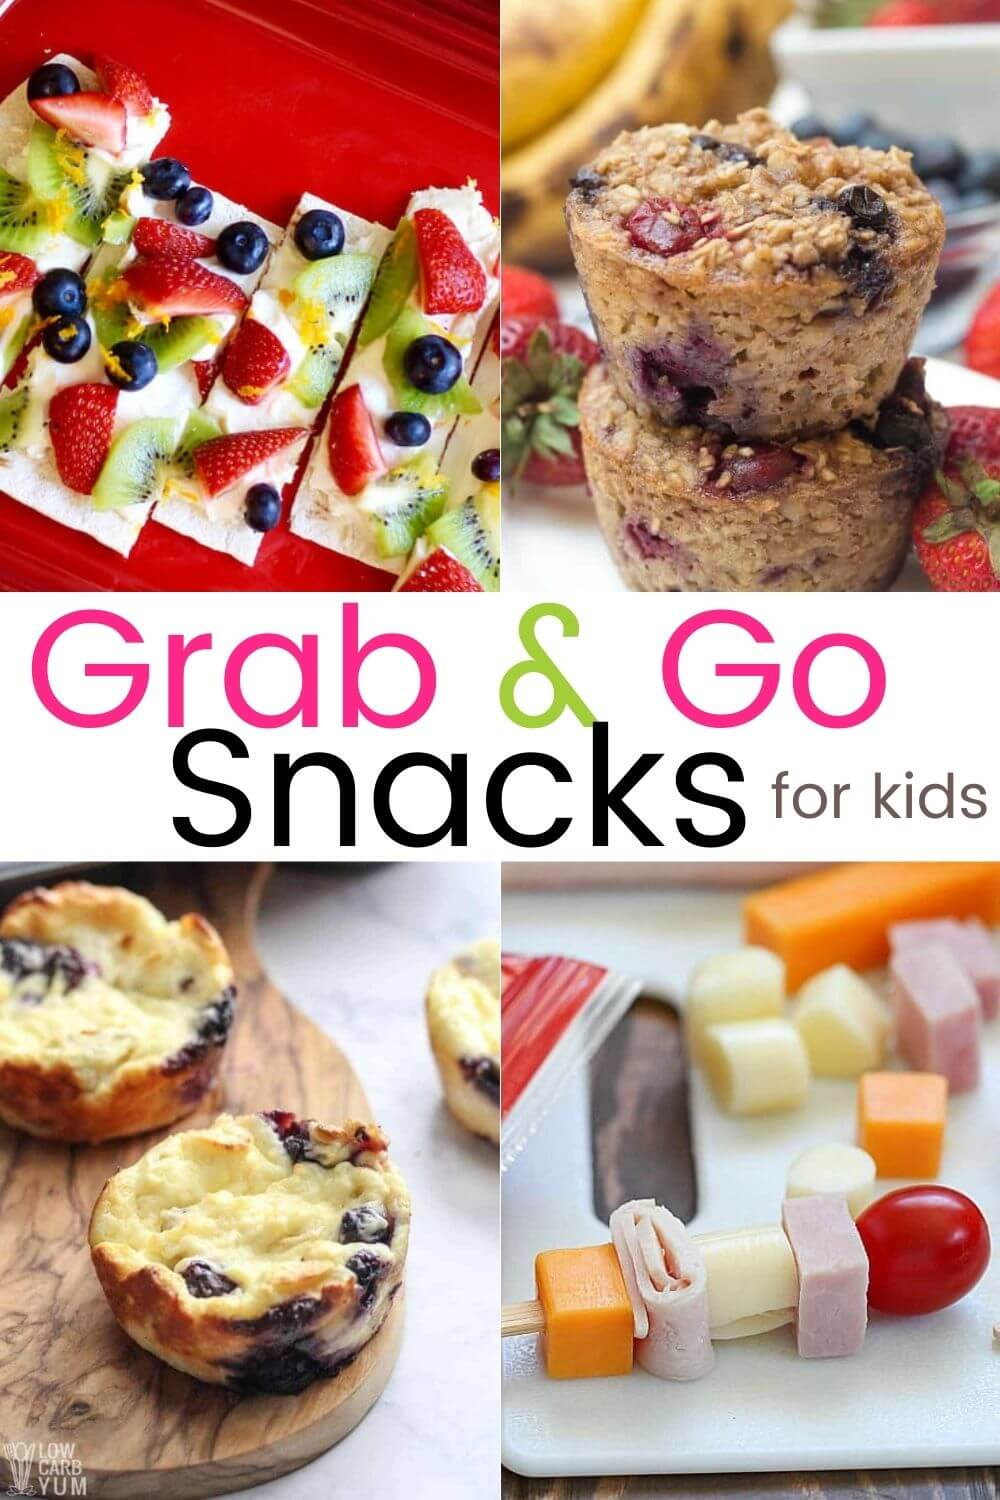 Healthy Fun Snacks for Kids - Kid Friendly Grab and Go Snacks